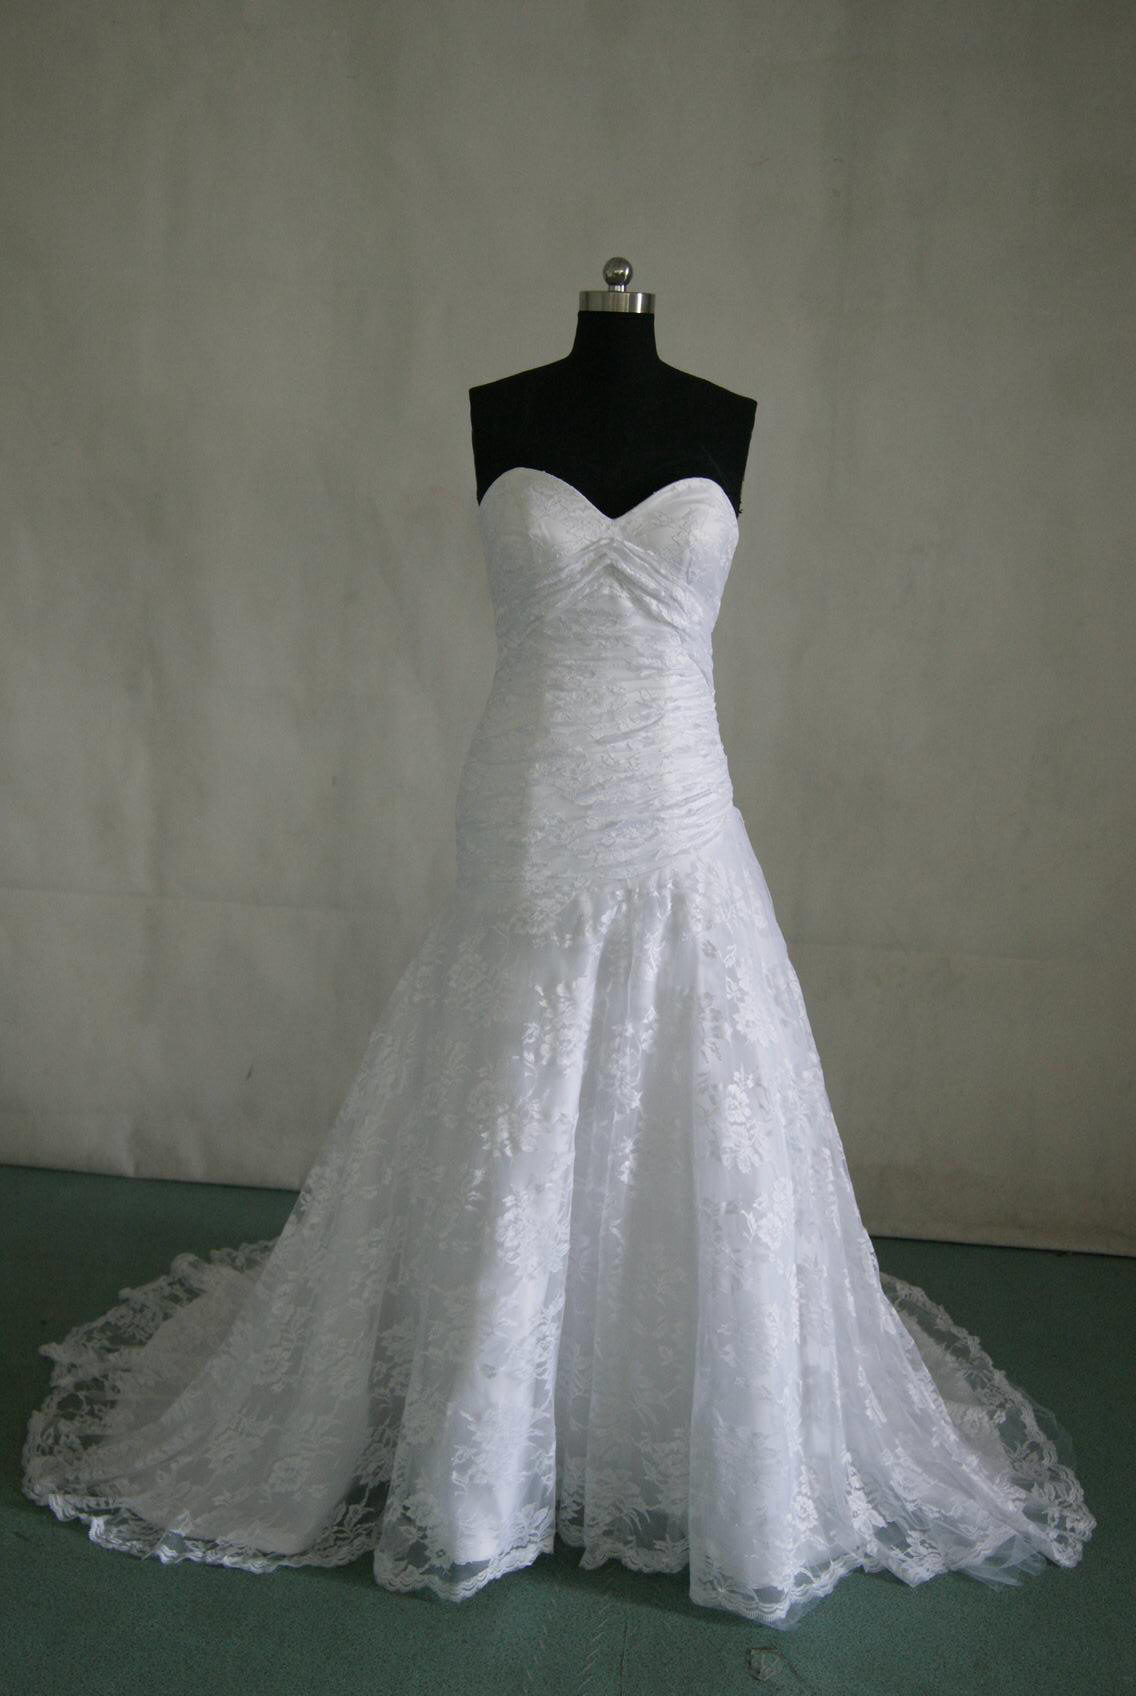 White lace wedding gown with strapless sweetheart neckline